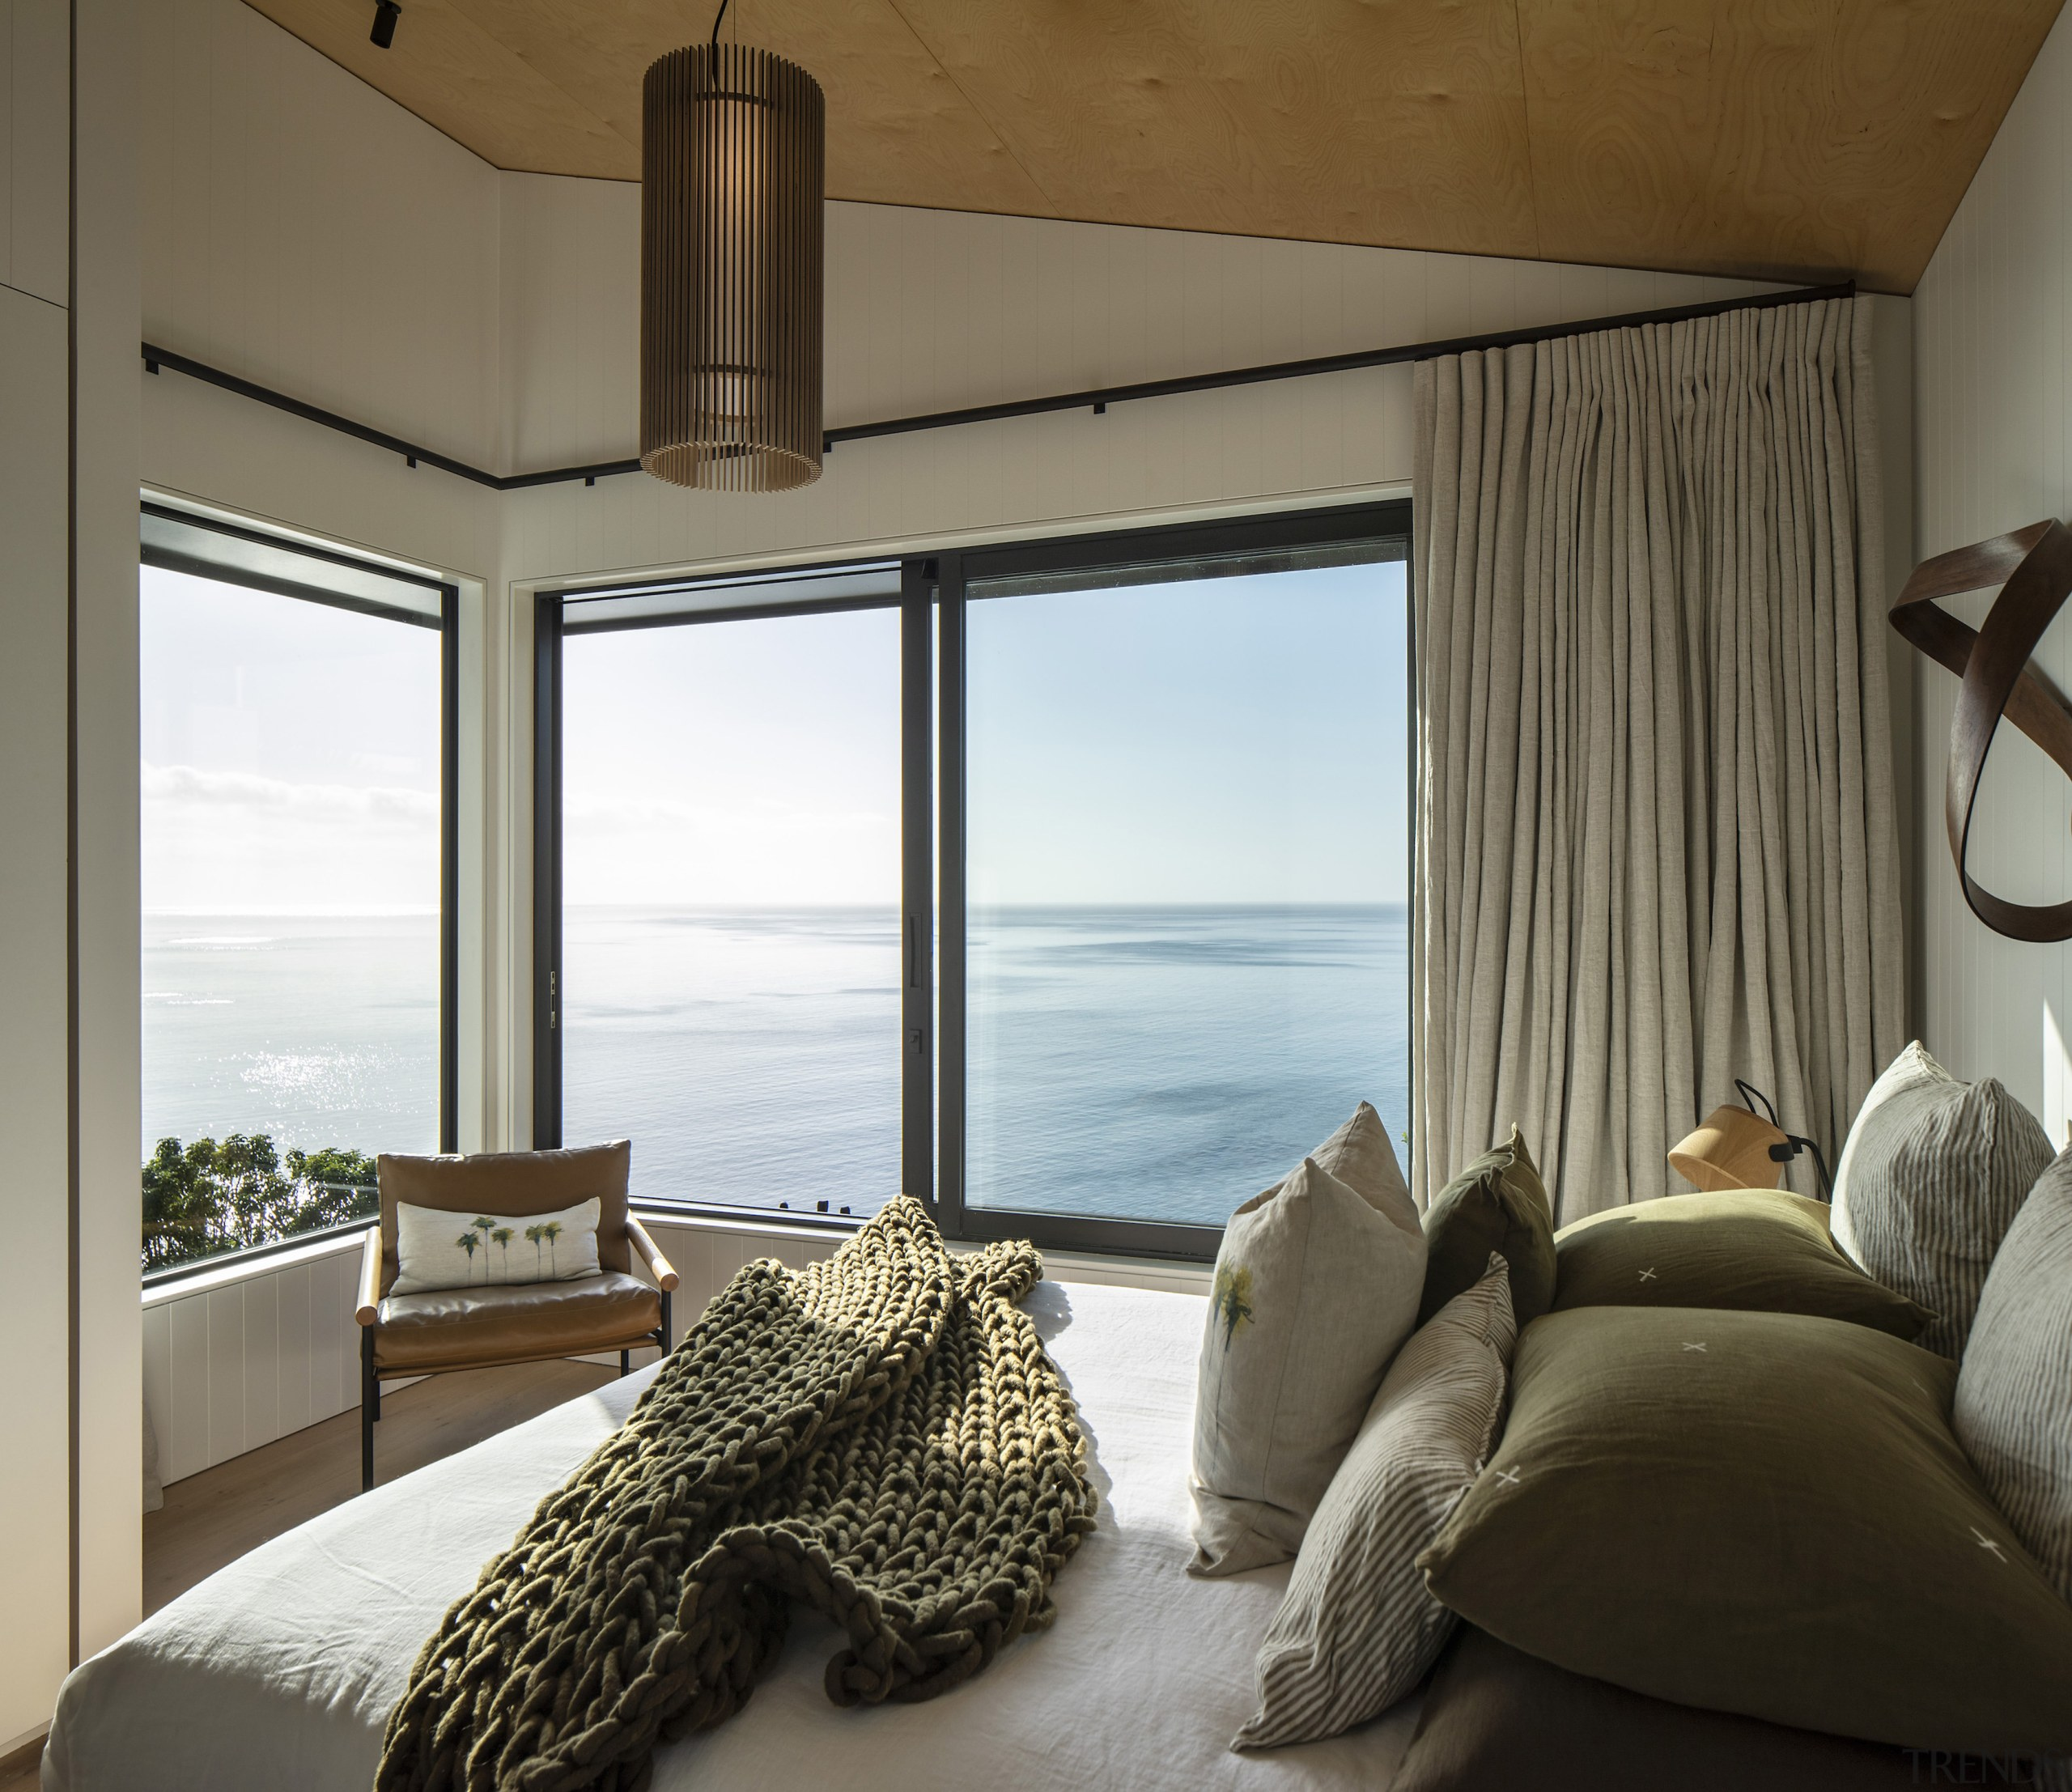 The master bedroom is right at the ocean